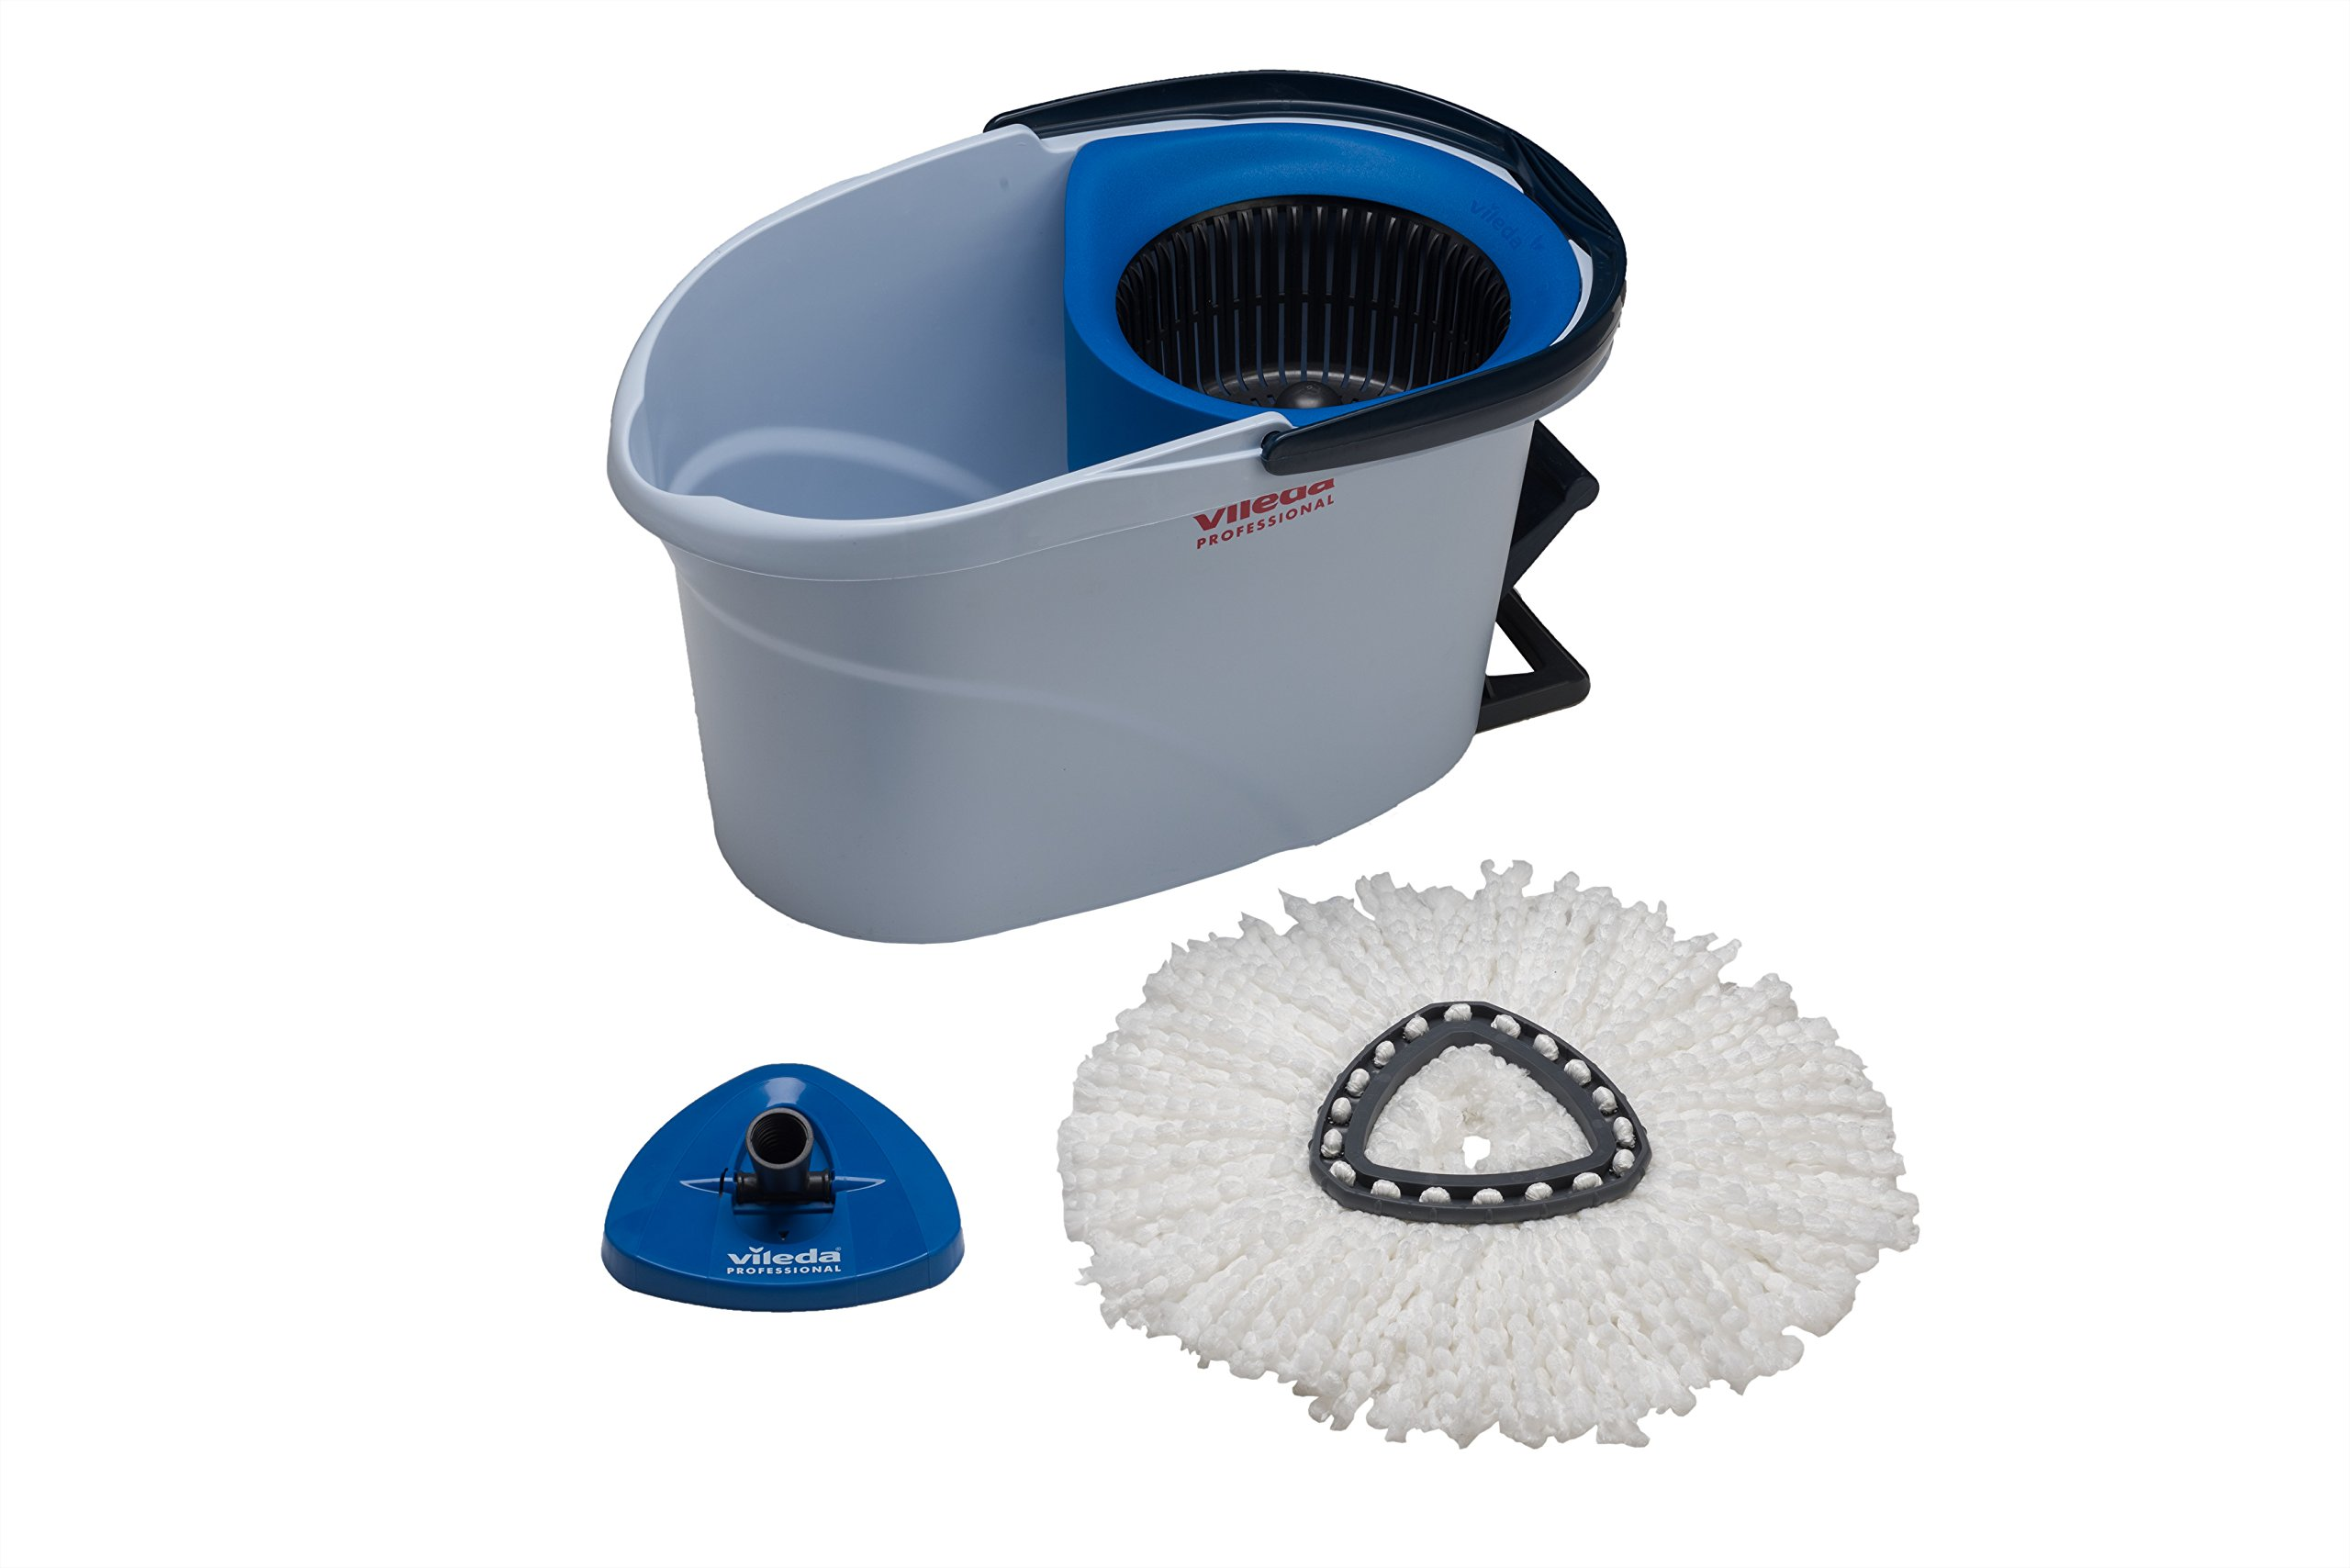 Vileda UltraSpin Mini Kit, Spin Mop with Bucket System for Professional Kitchen Floor Cleaning by Vileda Professional